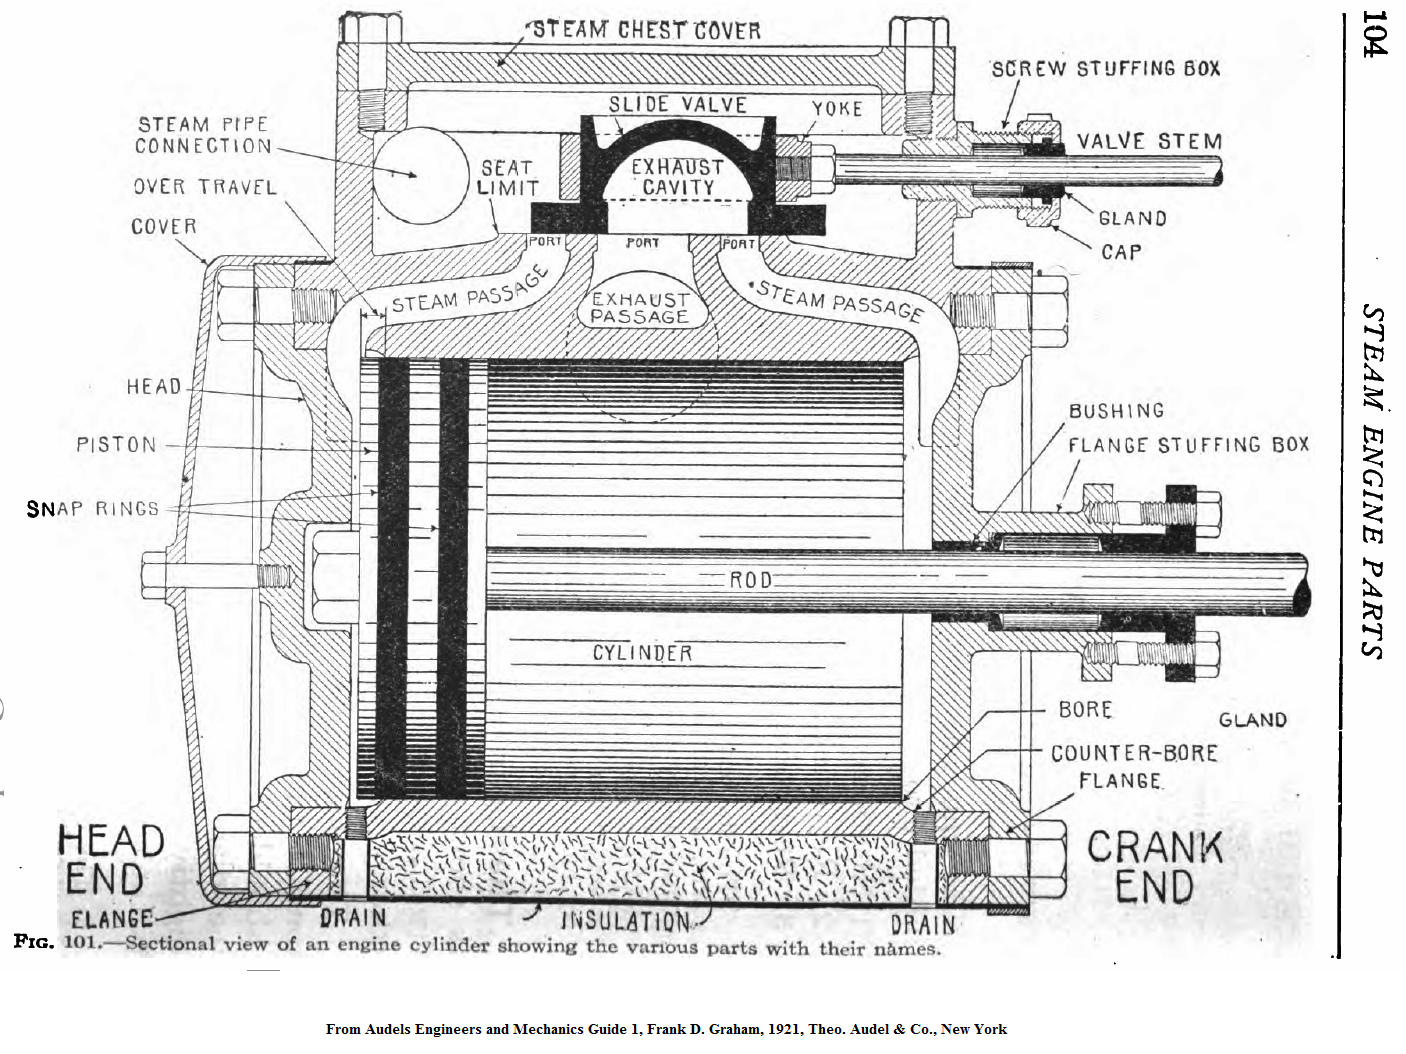 ... and an engine schematic.